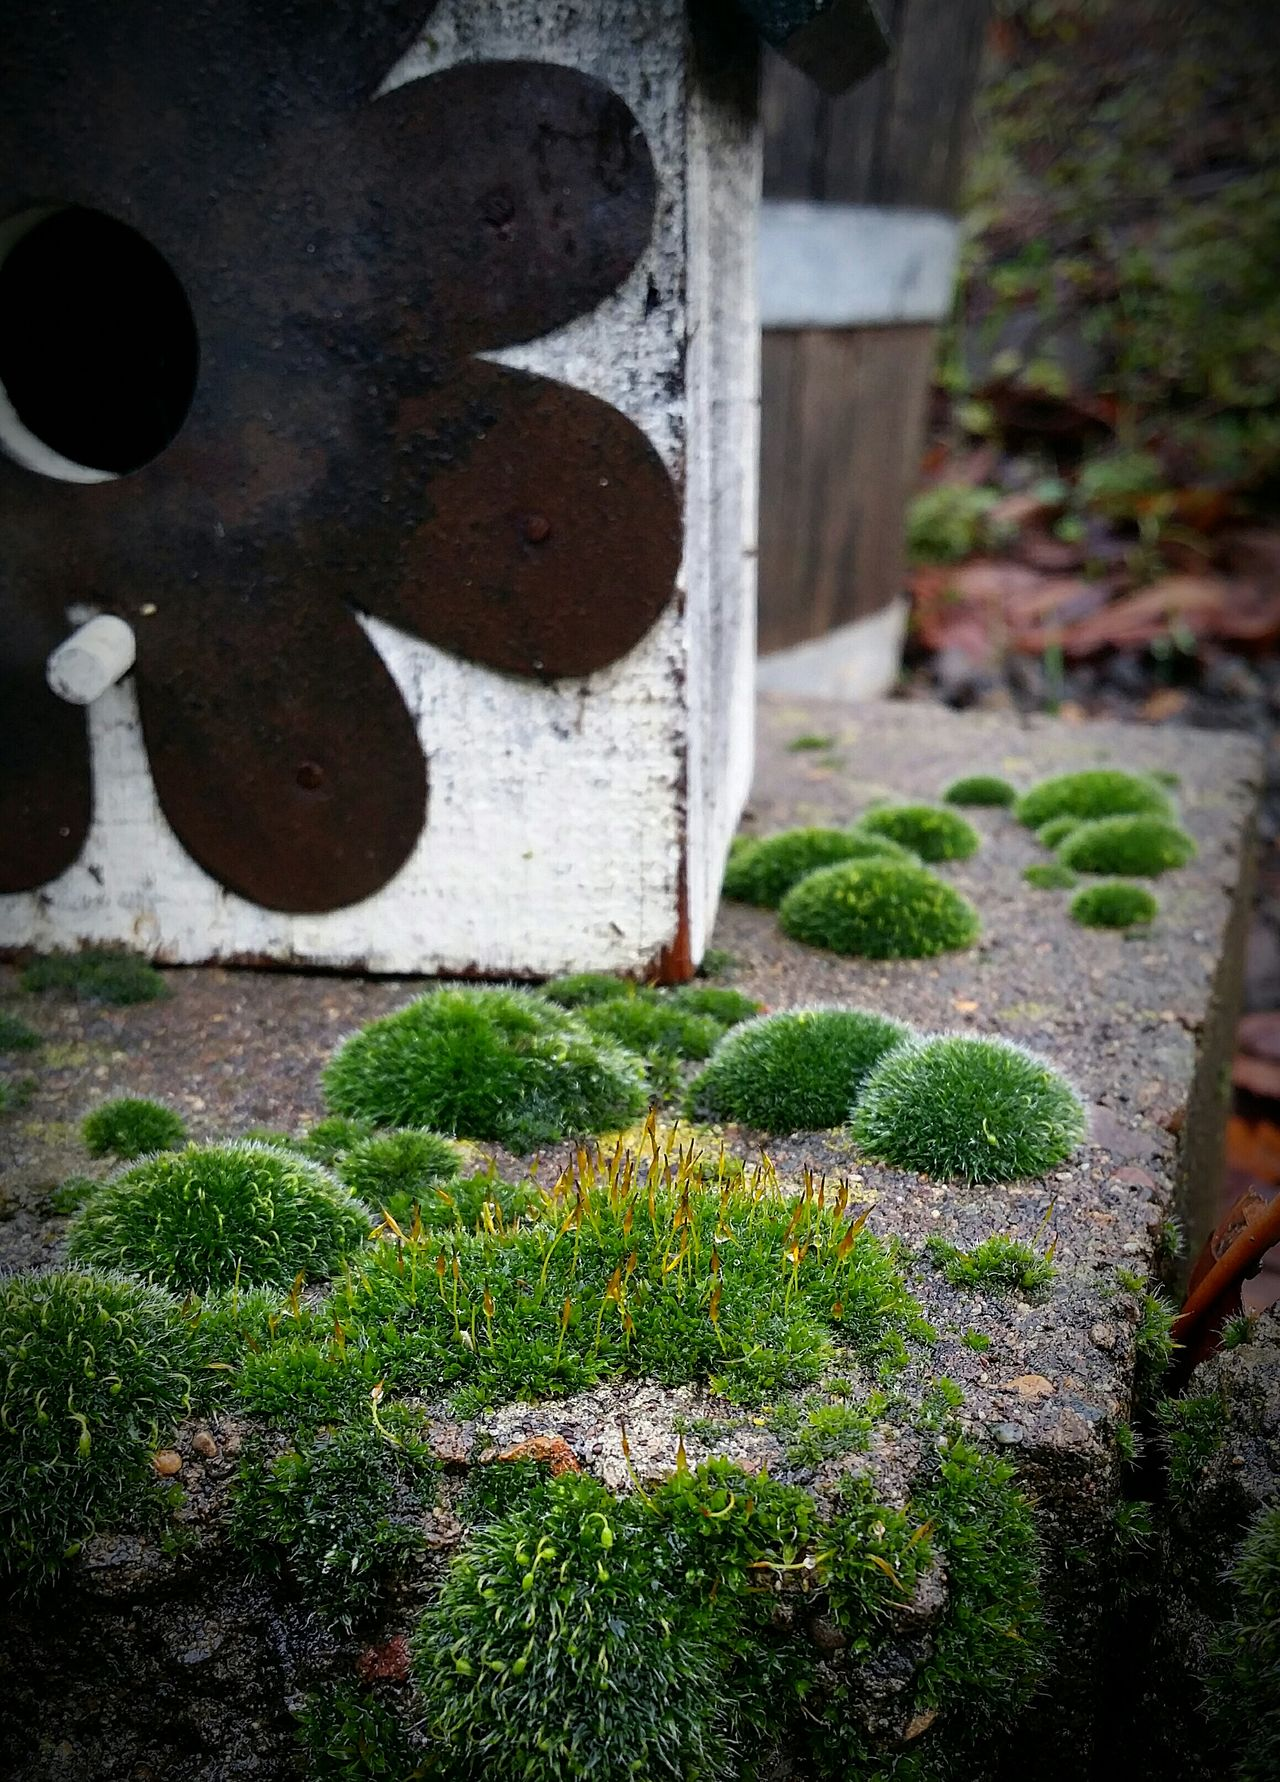 Fairy Garden Garden From The Fairy Garden Gardens Garden Photography Moss Mossy Mossy Garden